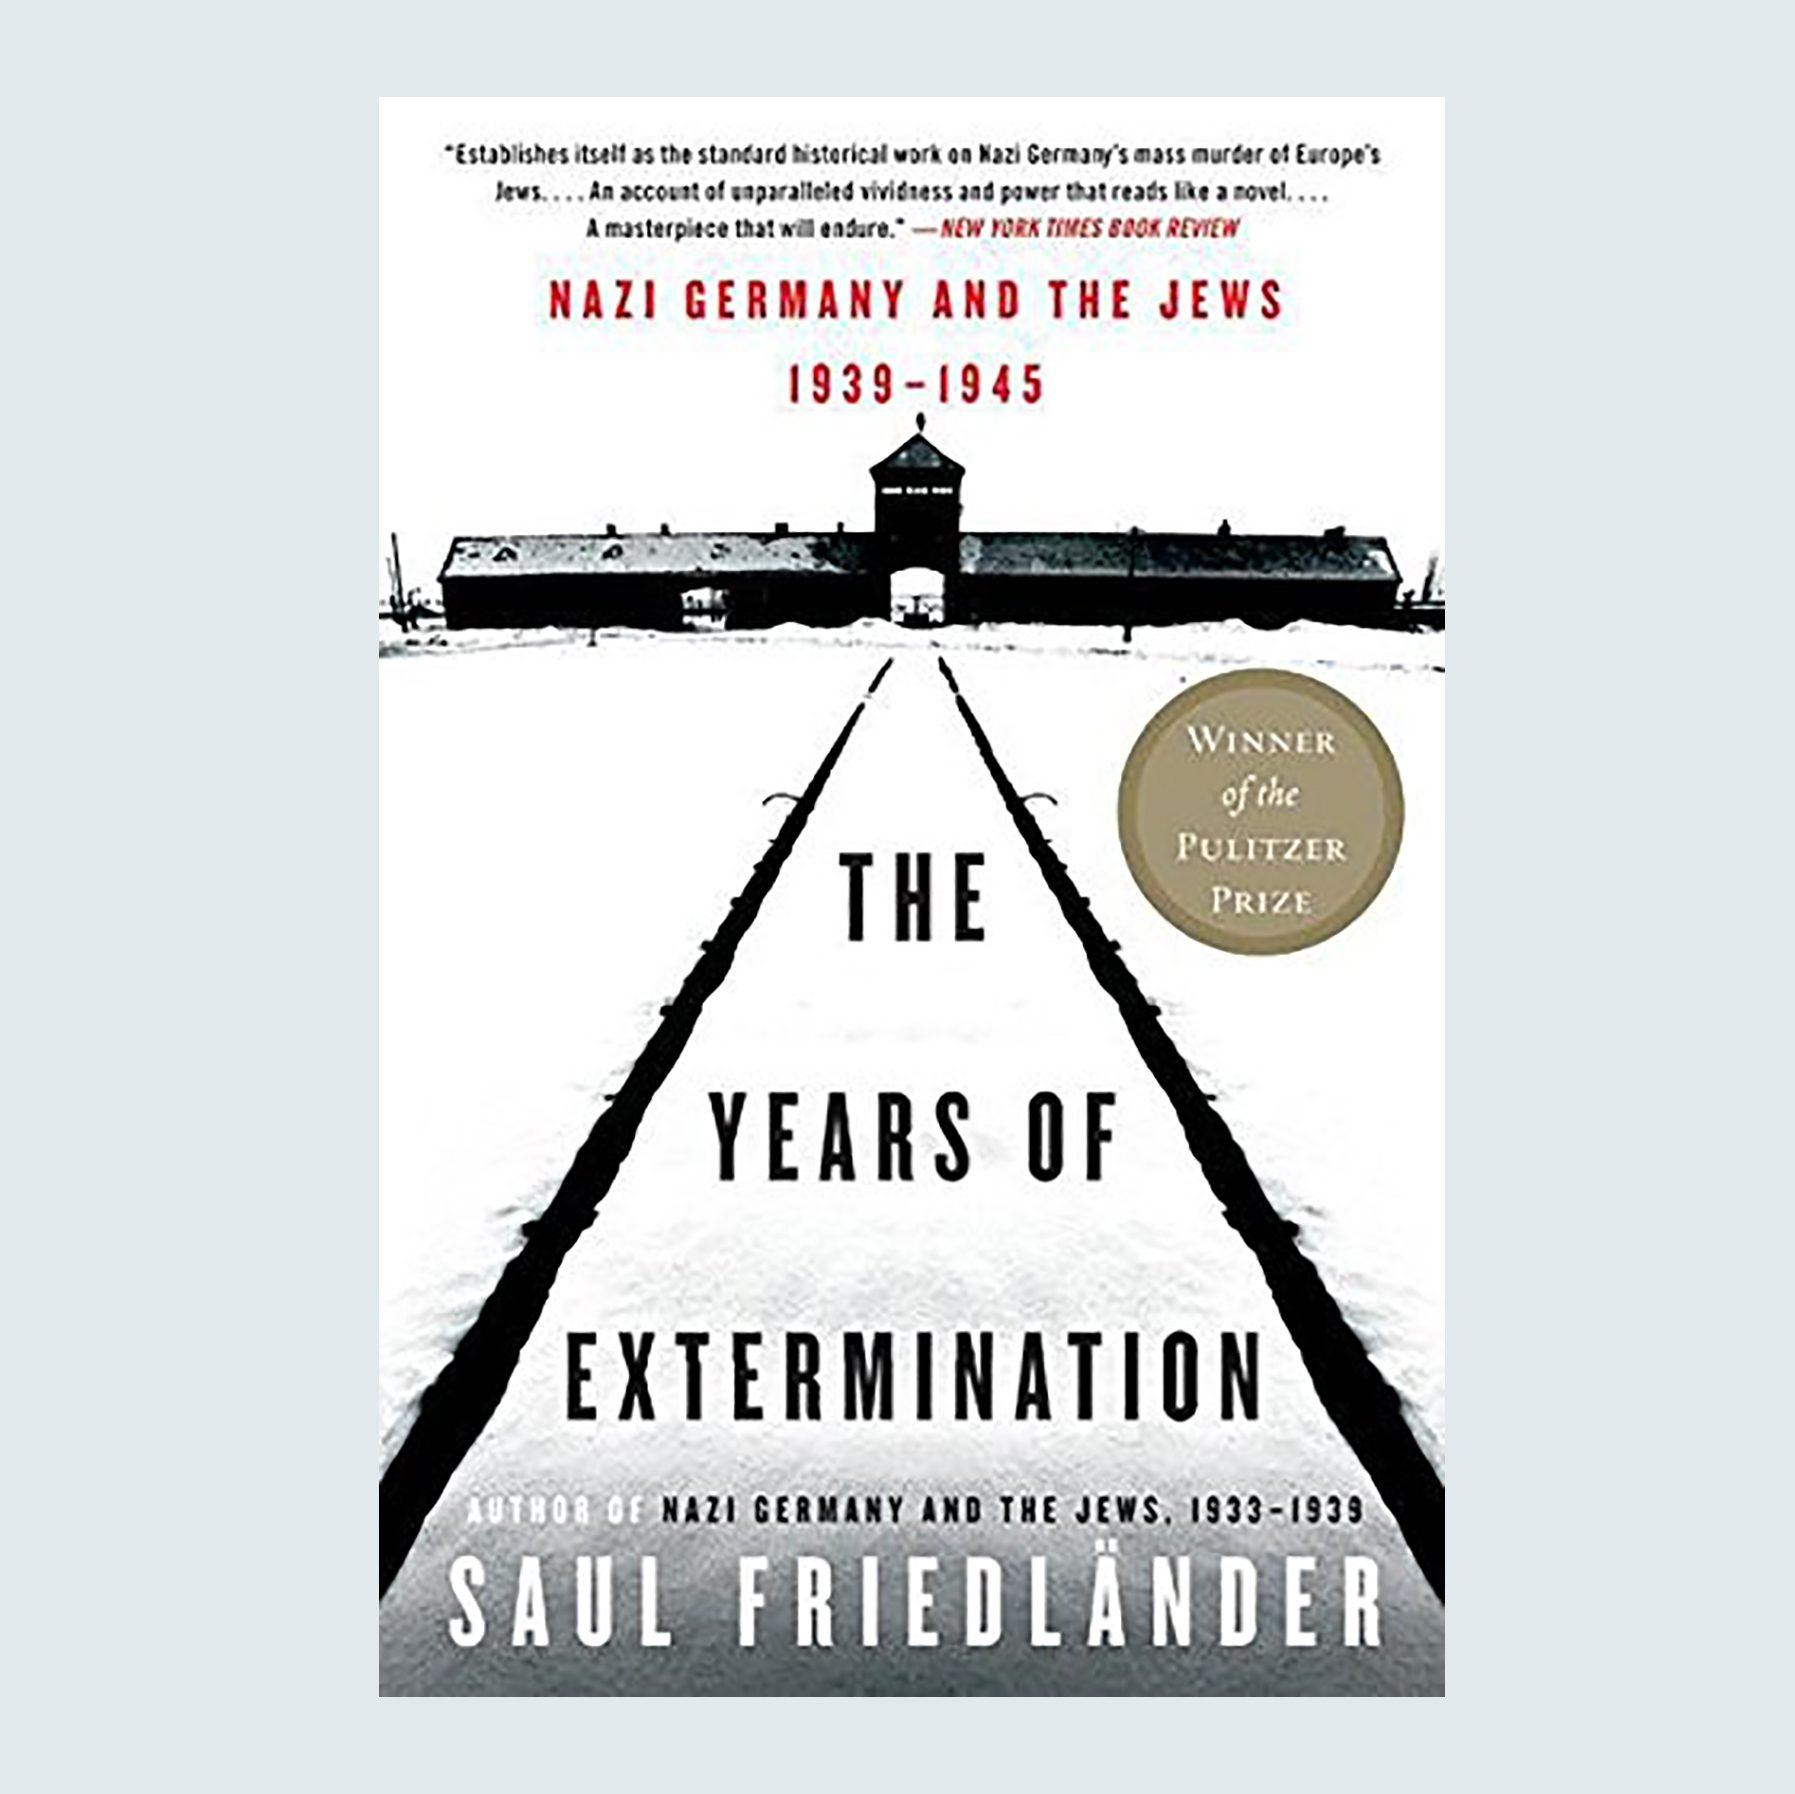 The Years of Extermination: Nazi Germany and the Jews, 1939–1945 by Saul Friedländer